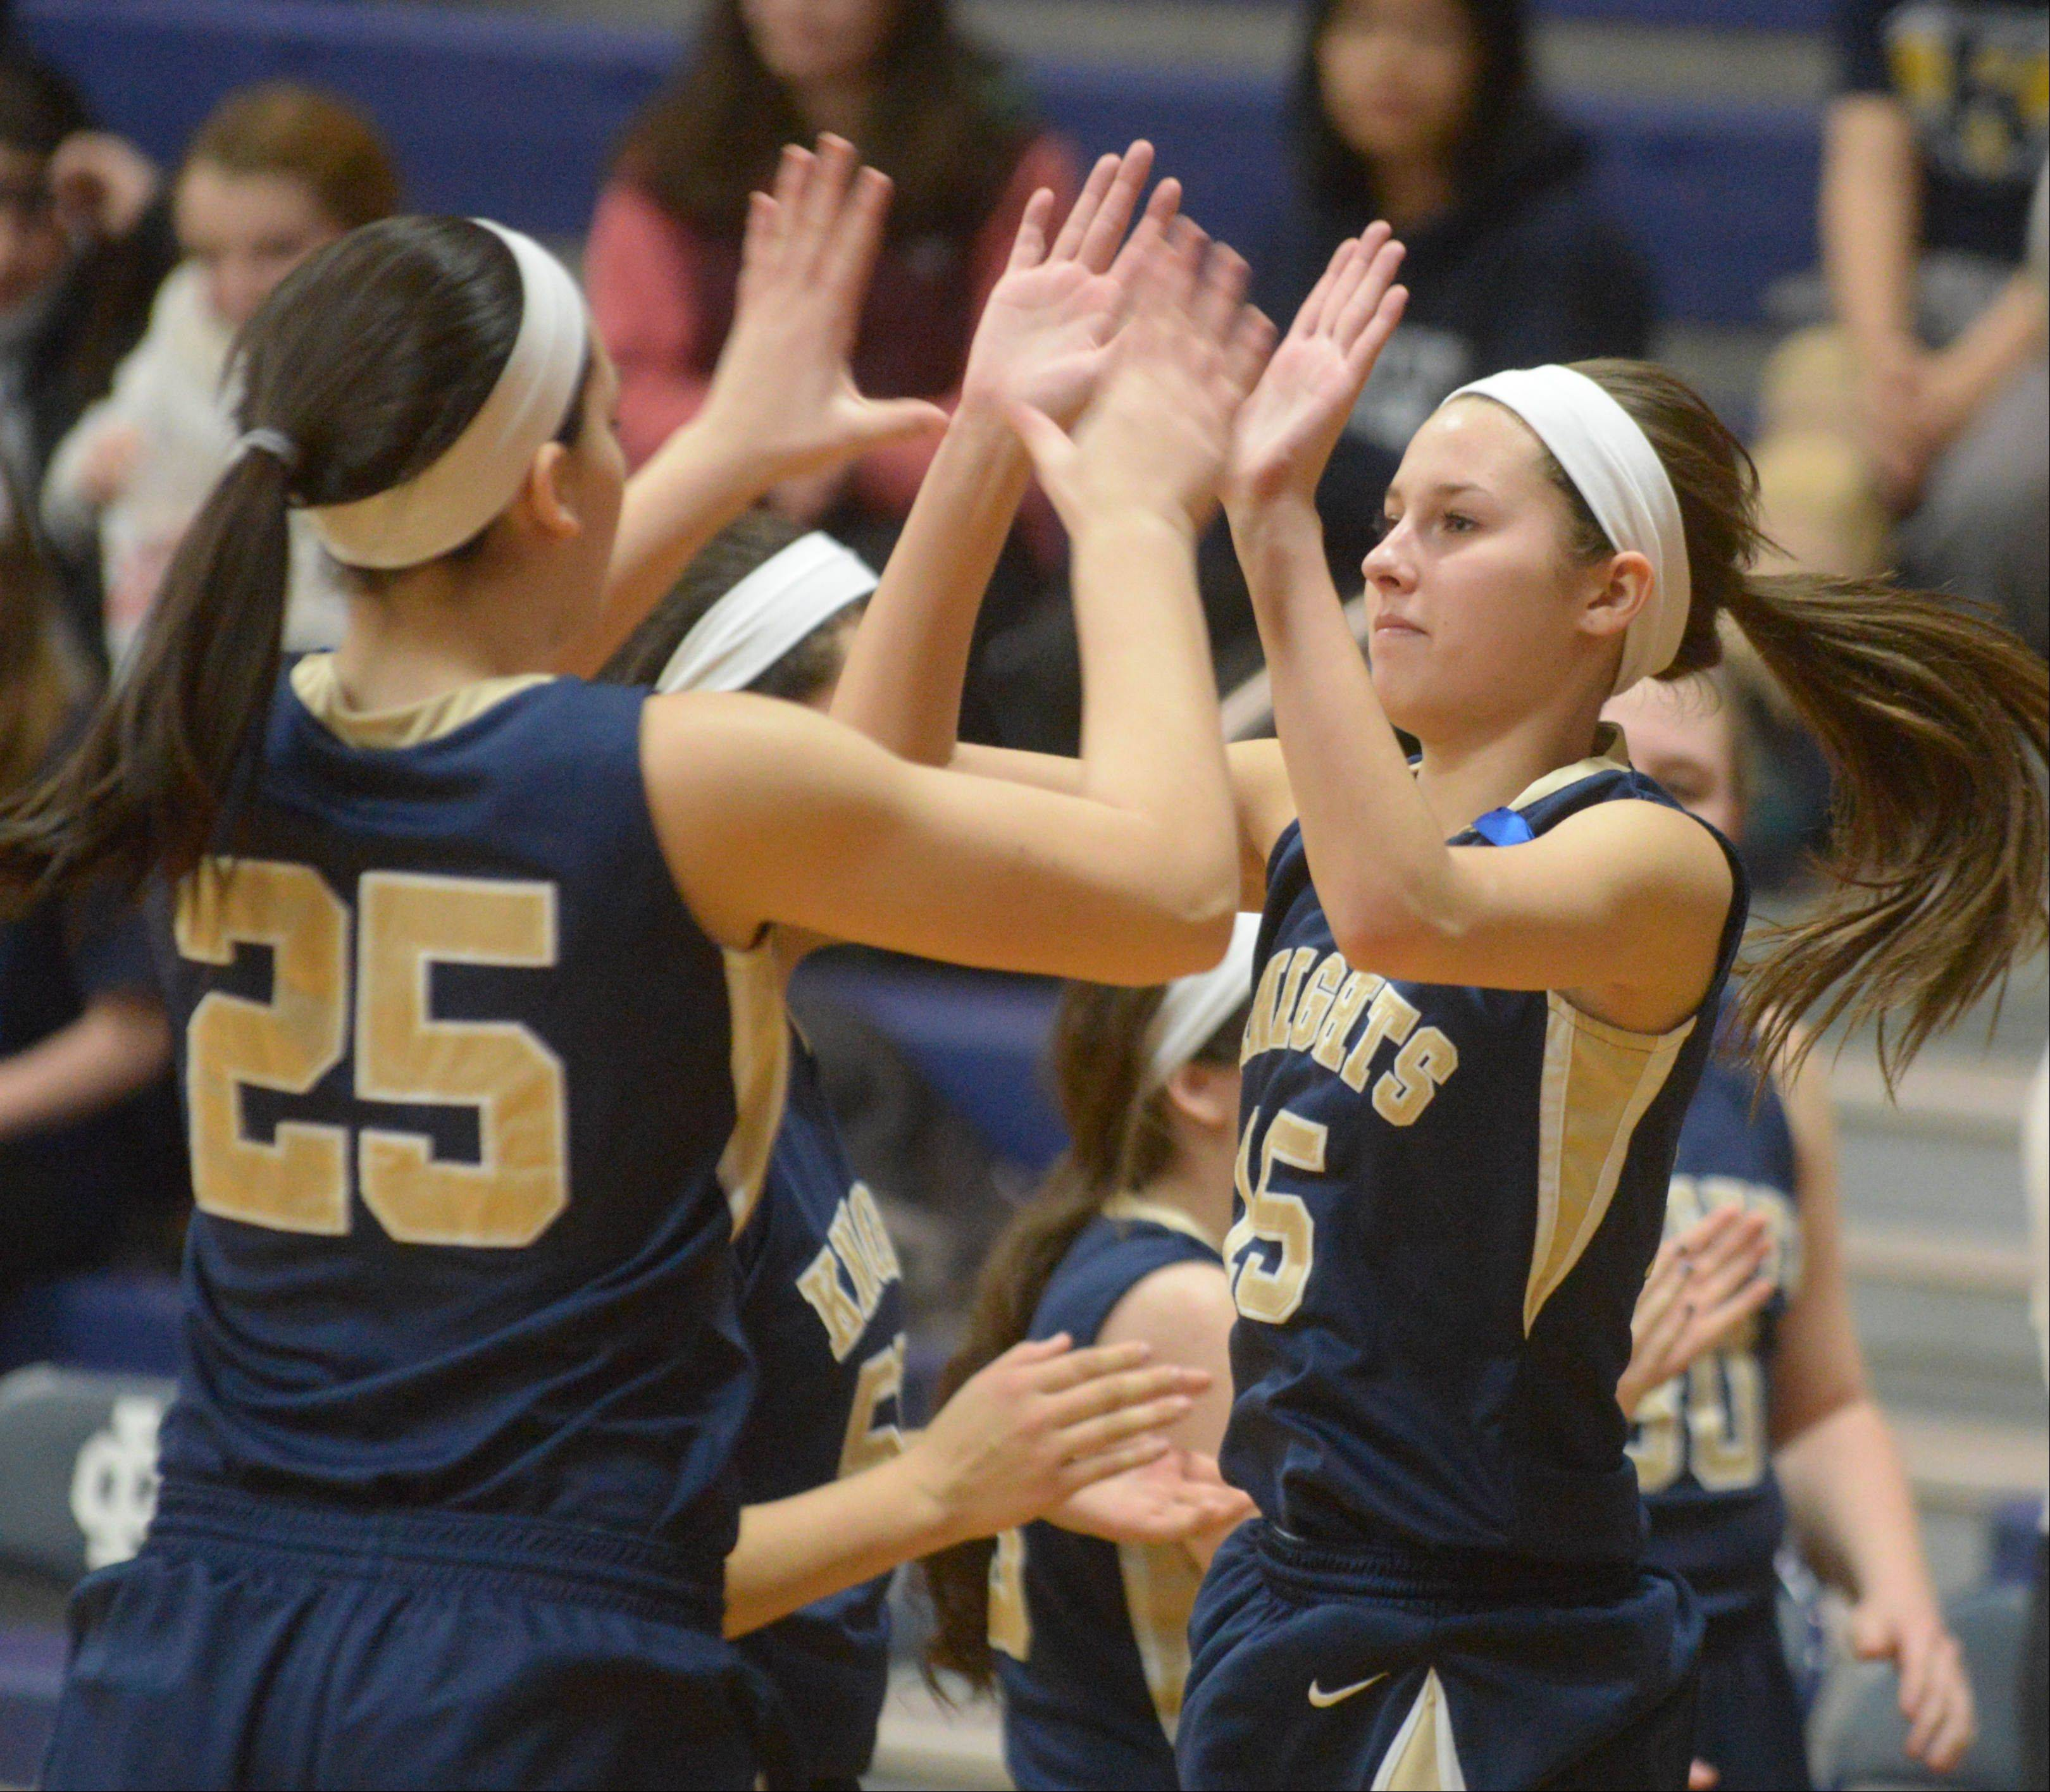 Images: Lisle vs. Immaculate Conception, girls basketball